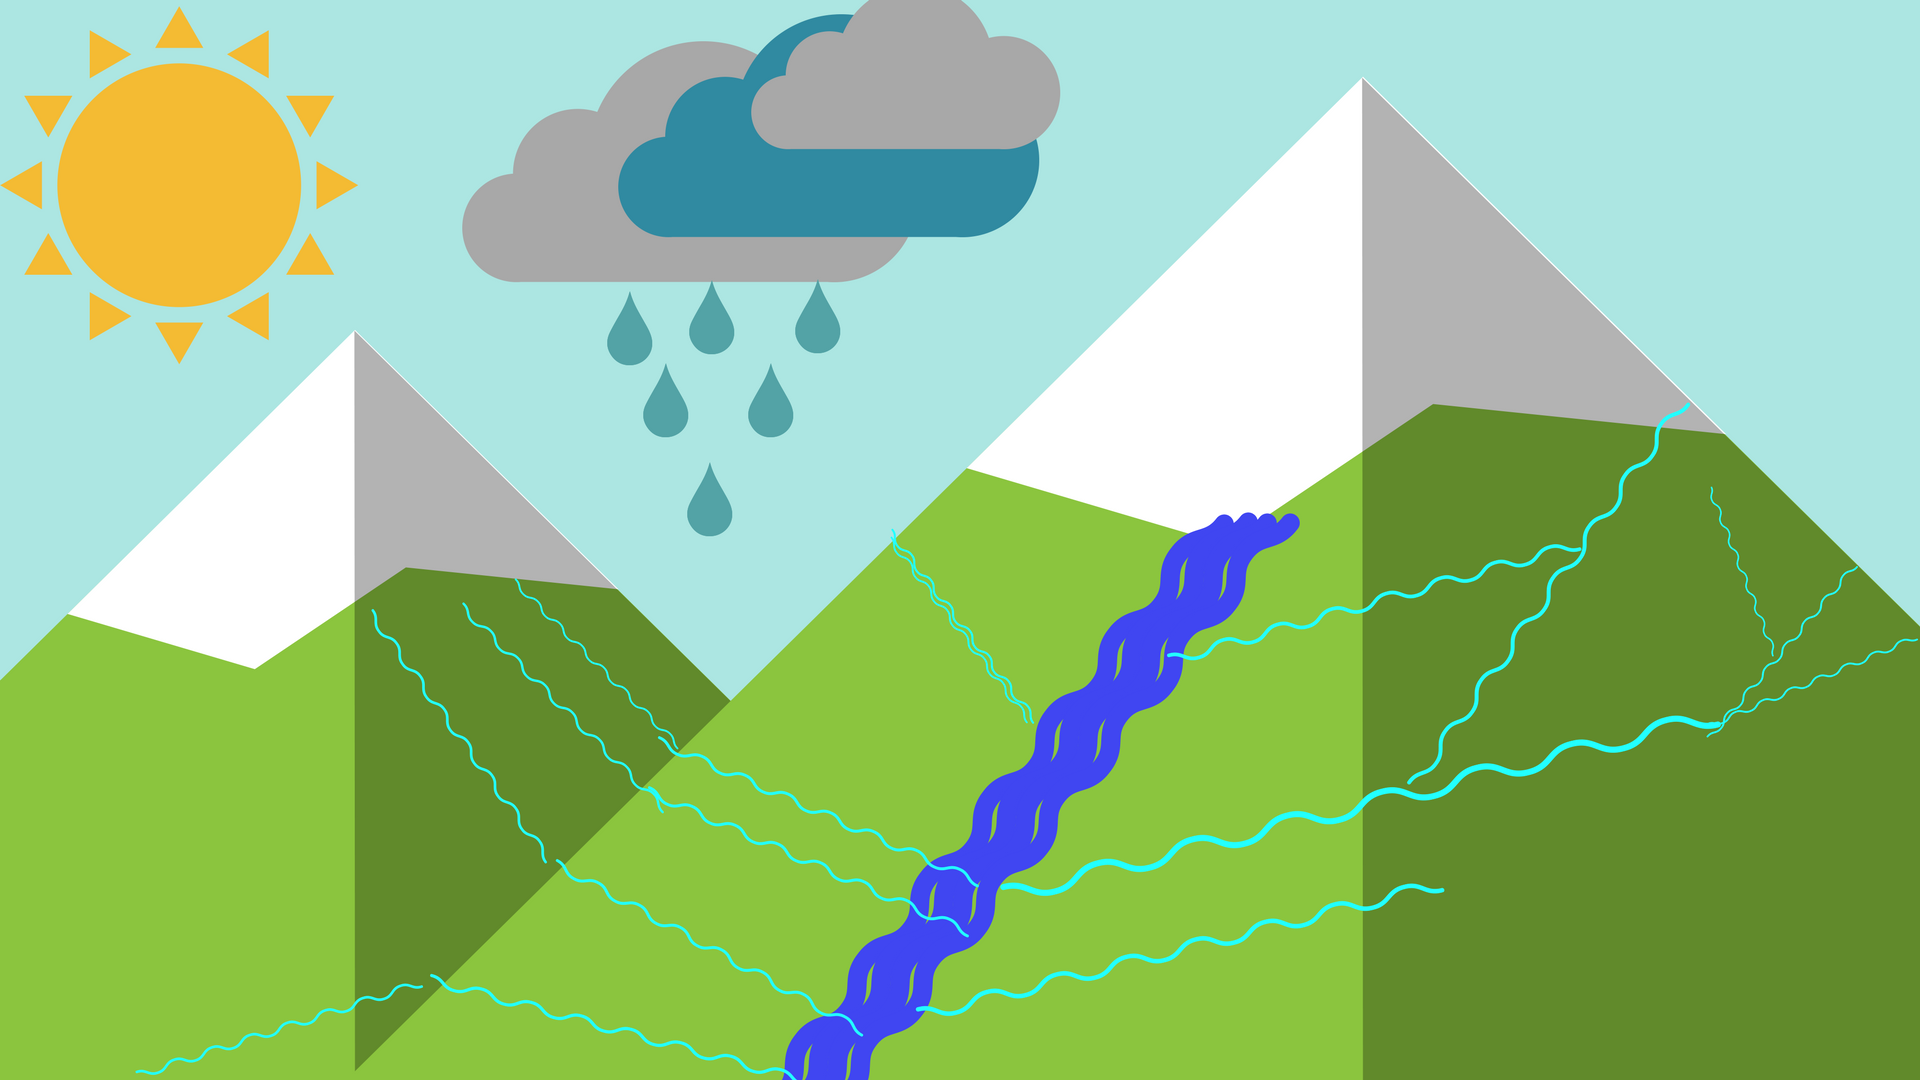 The depiction of a watershed